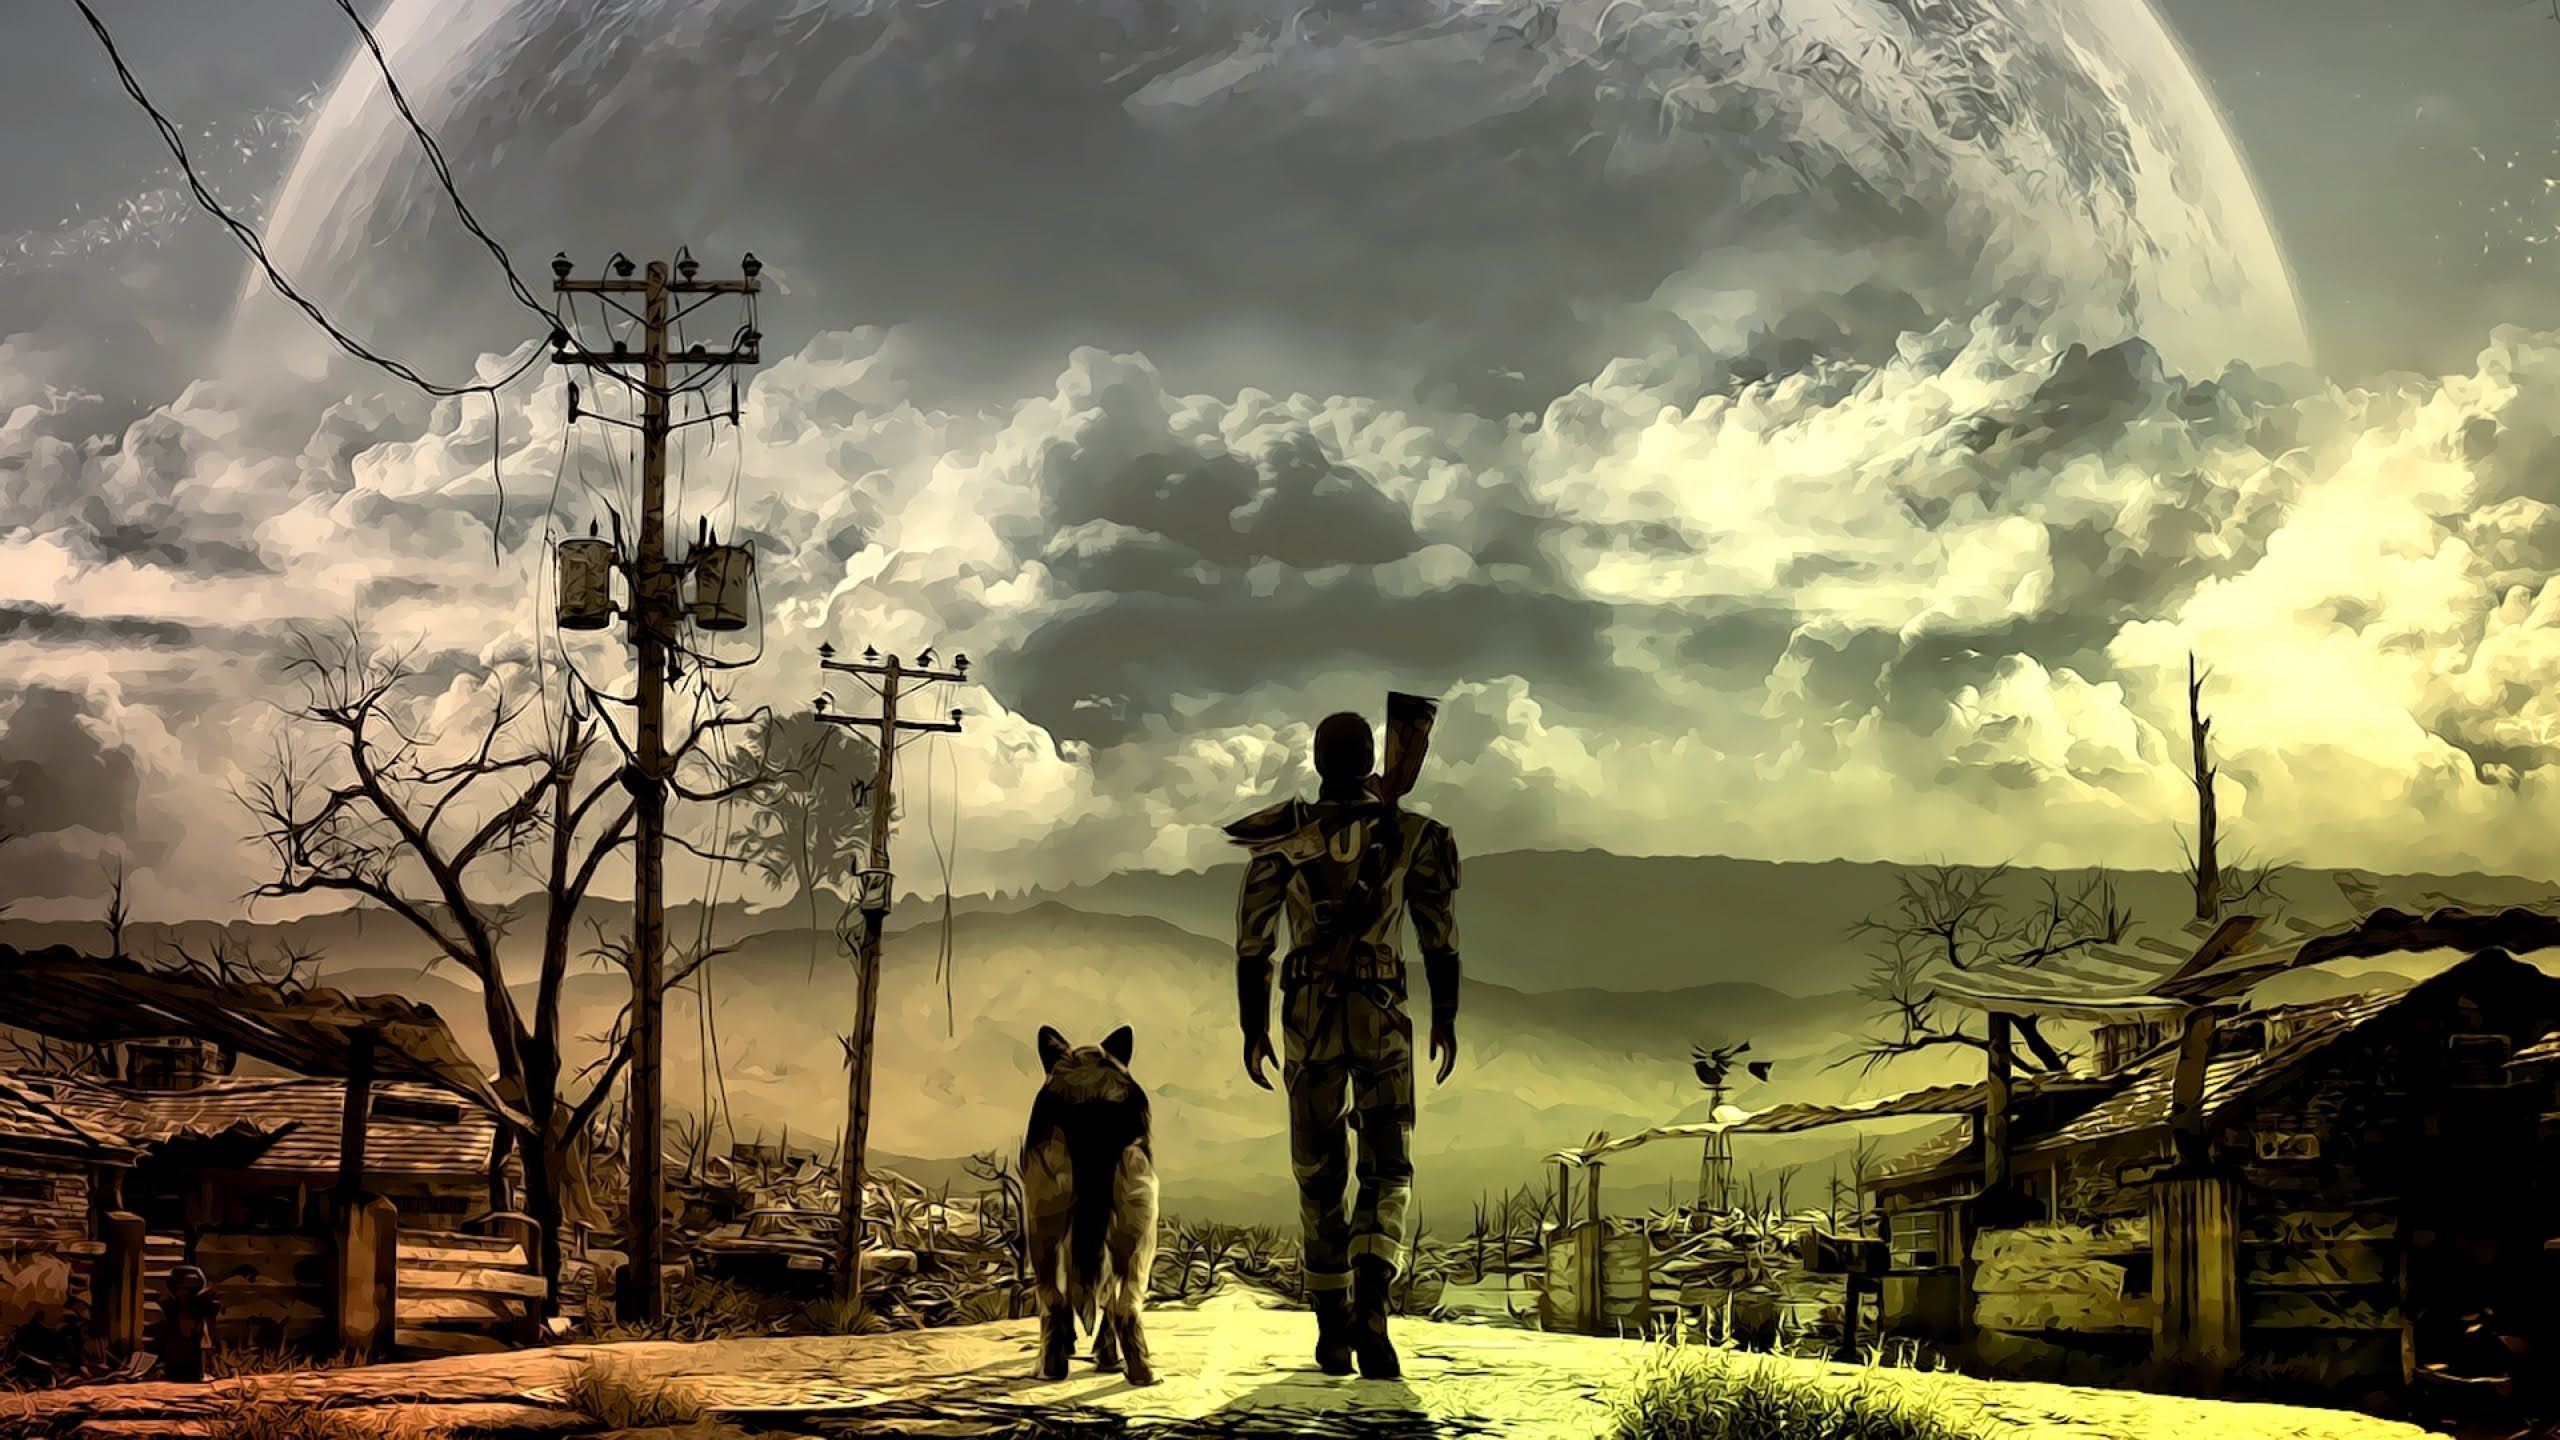 HD Fallout 4 Wallpapers (83+ images)